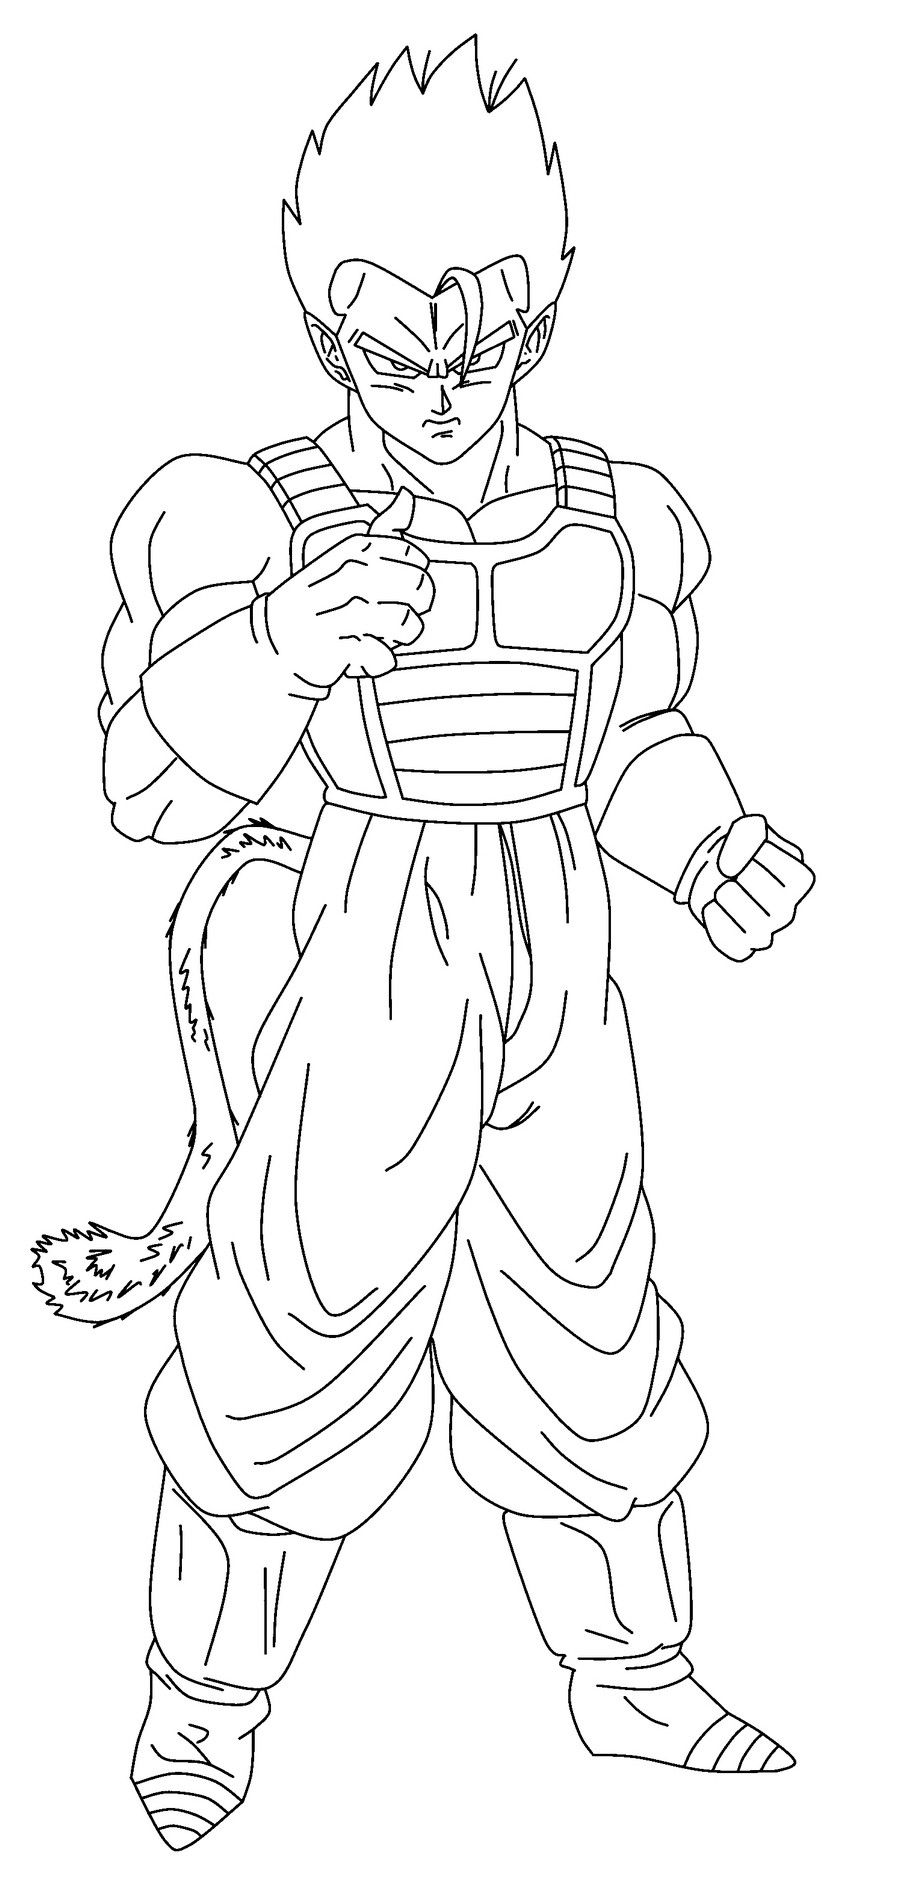 Coloriage Dragon Ball Z Vegeta Majin Meilleures Id Es Coloriage Avec Copie 20de 20img 2608 20ii Et Dess Coloriage Dragon Ball Coloriage Dragon Ball Z Coloriage